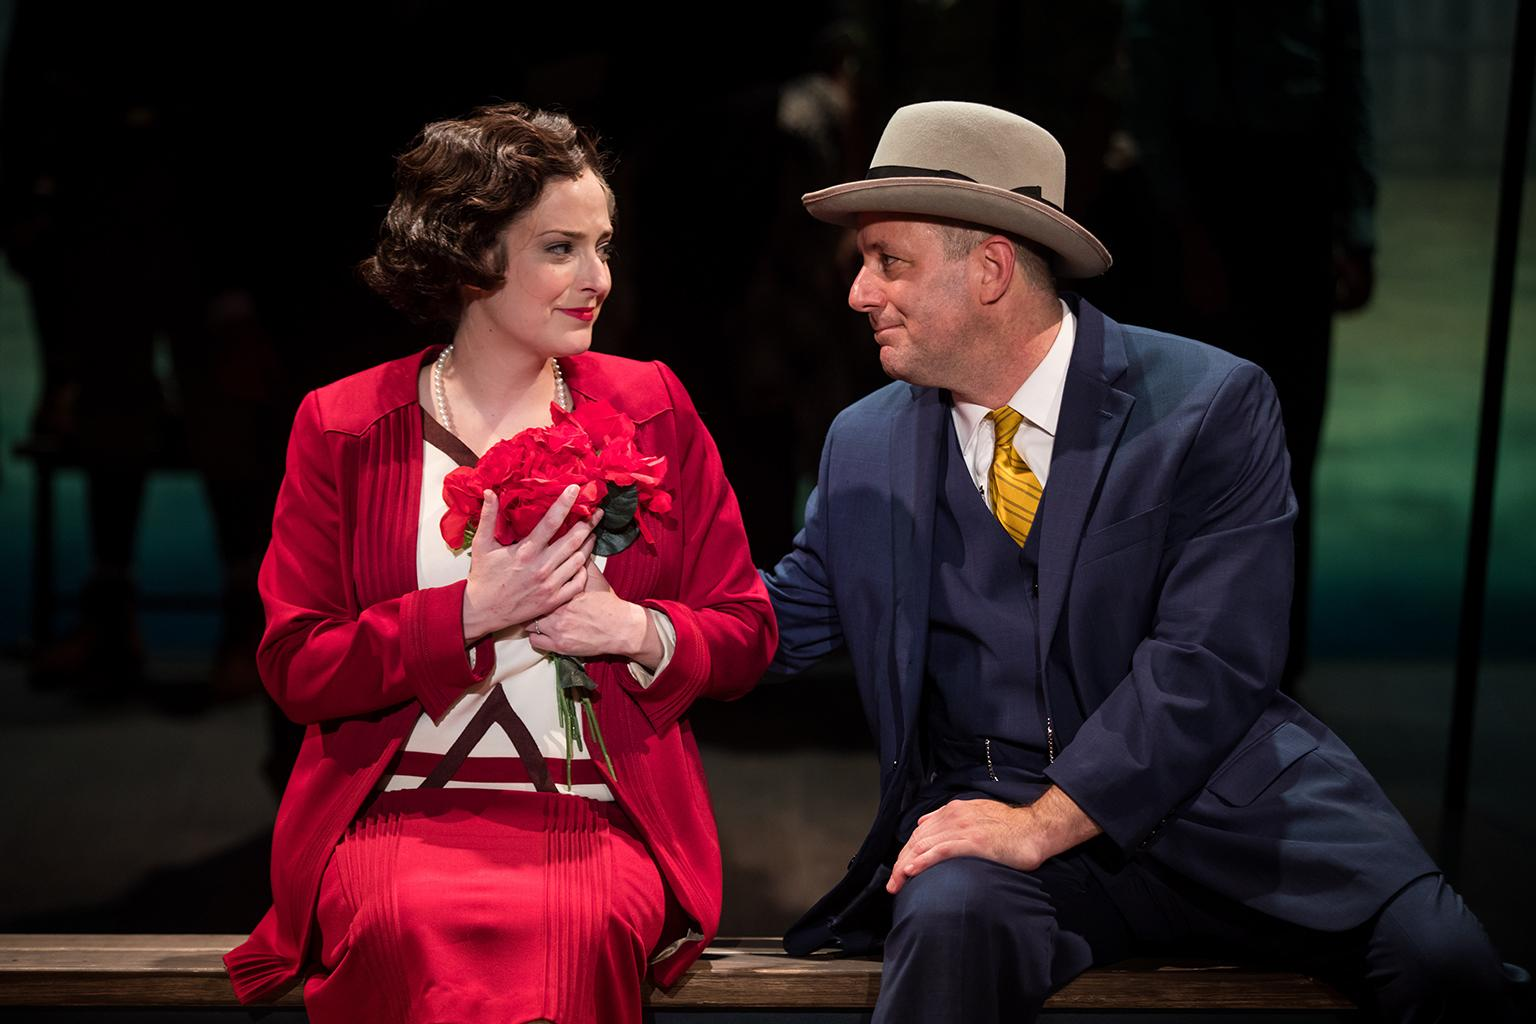 Bonnie (Dara Cameron) and Knute (Stef Tovar) fall in love again. (Credit: Justin Barbin)